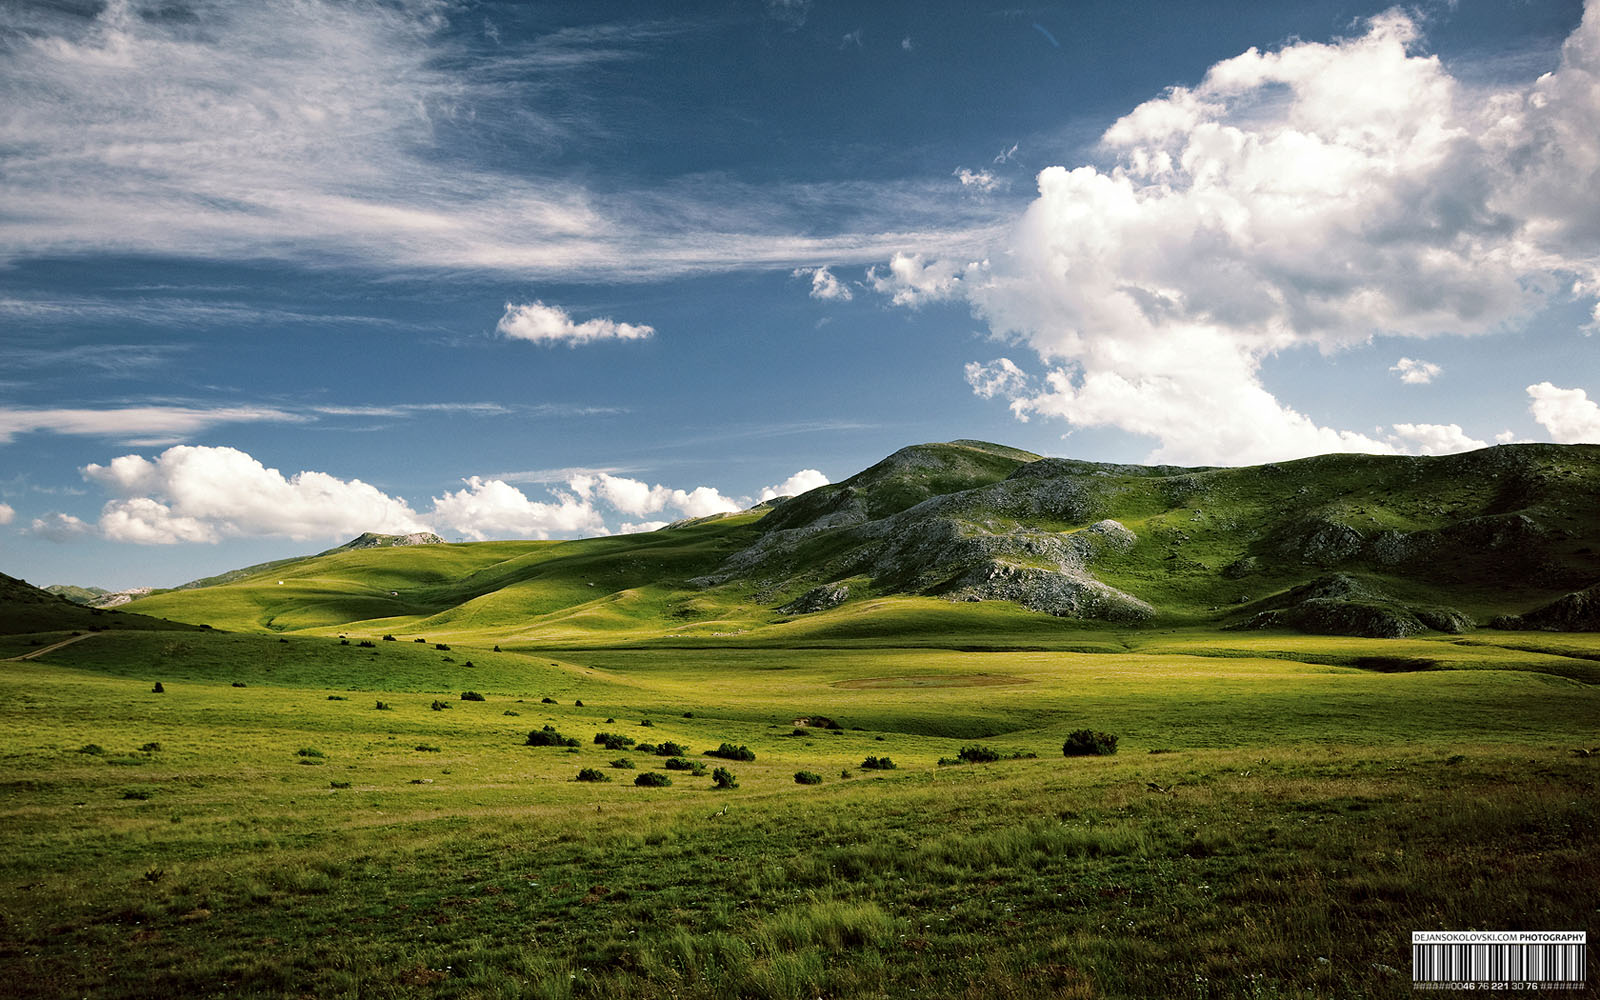 9 Mountain Landscape Wallpaper - Examples Of Natural Landscapes , HD Wallpaper & Backgrounds